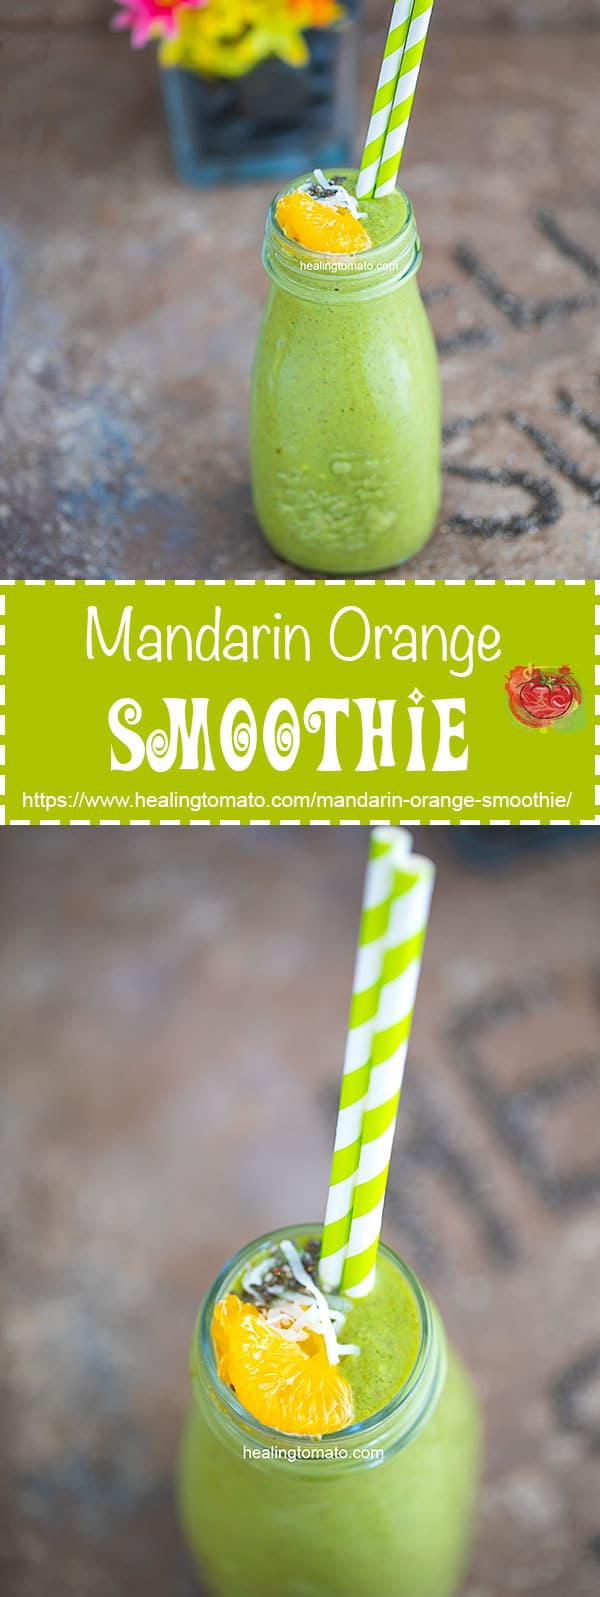 Vegan Mandarin Orange Smoothie Recipe made with antioxidants, vitamins and immune boosting ingredients! Vegan smoothie, Spinach Smoothie, Healthy recipes, Mandarin smoothies, vegan yogurt and packed with protein #vegan #vegetarian #smoothies #summer #drinks #healthy #recipes #veganfood #immuneboosting #refreshing #protein #summerdrinks